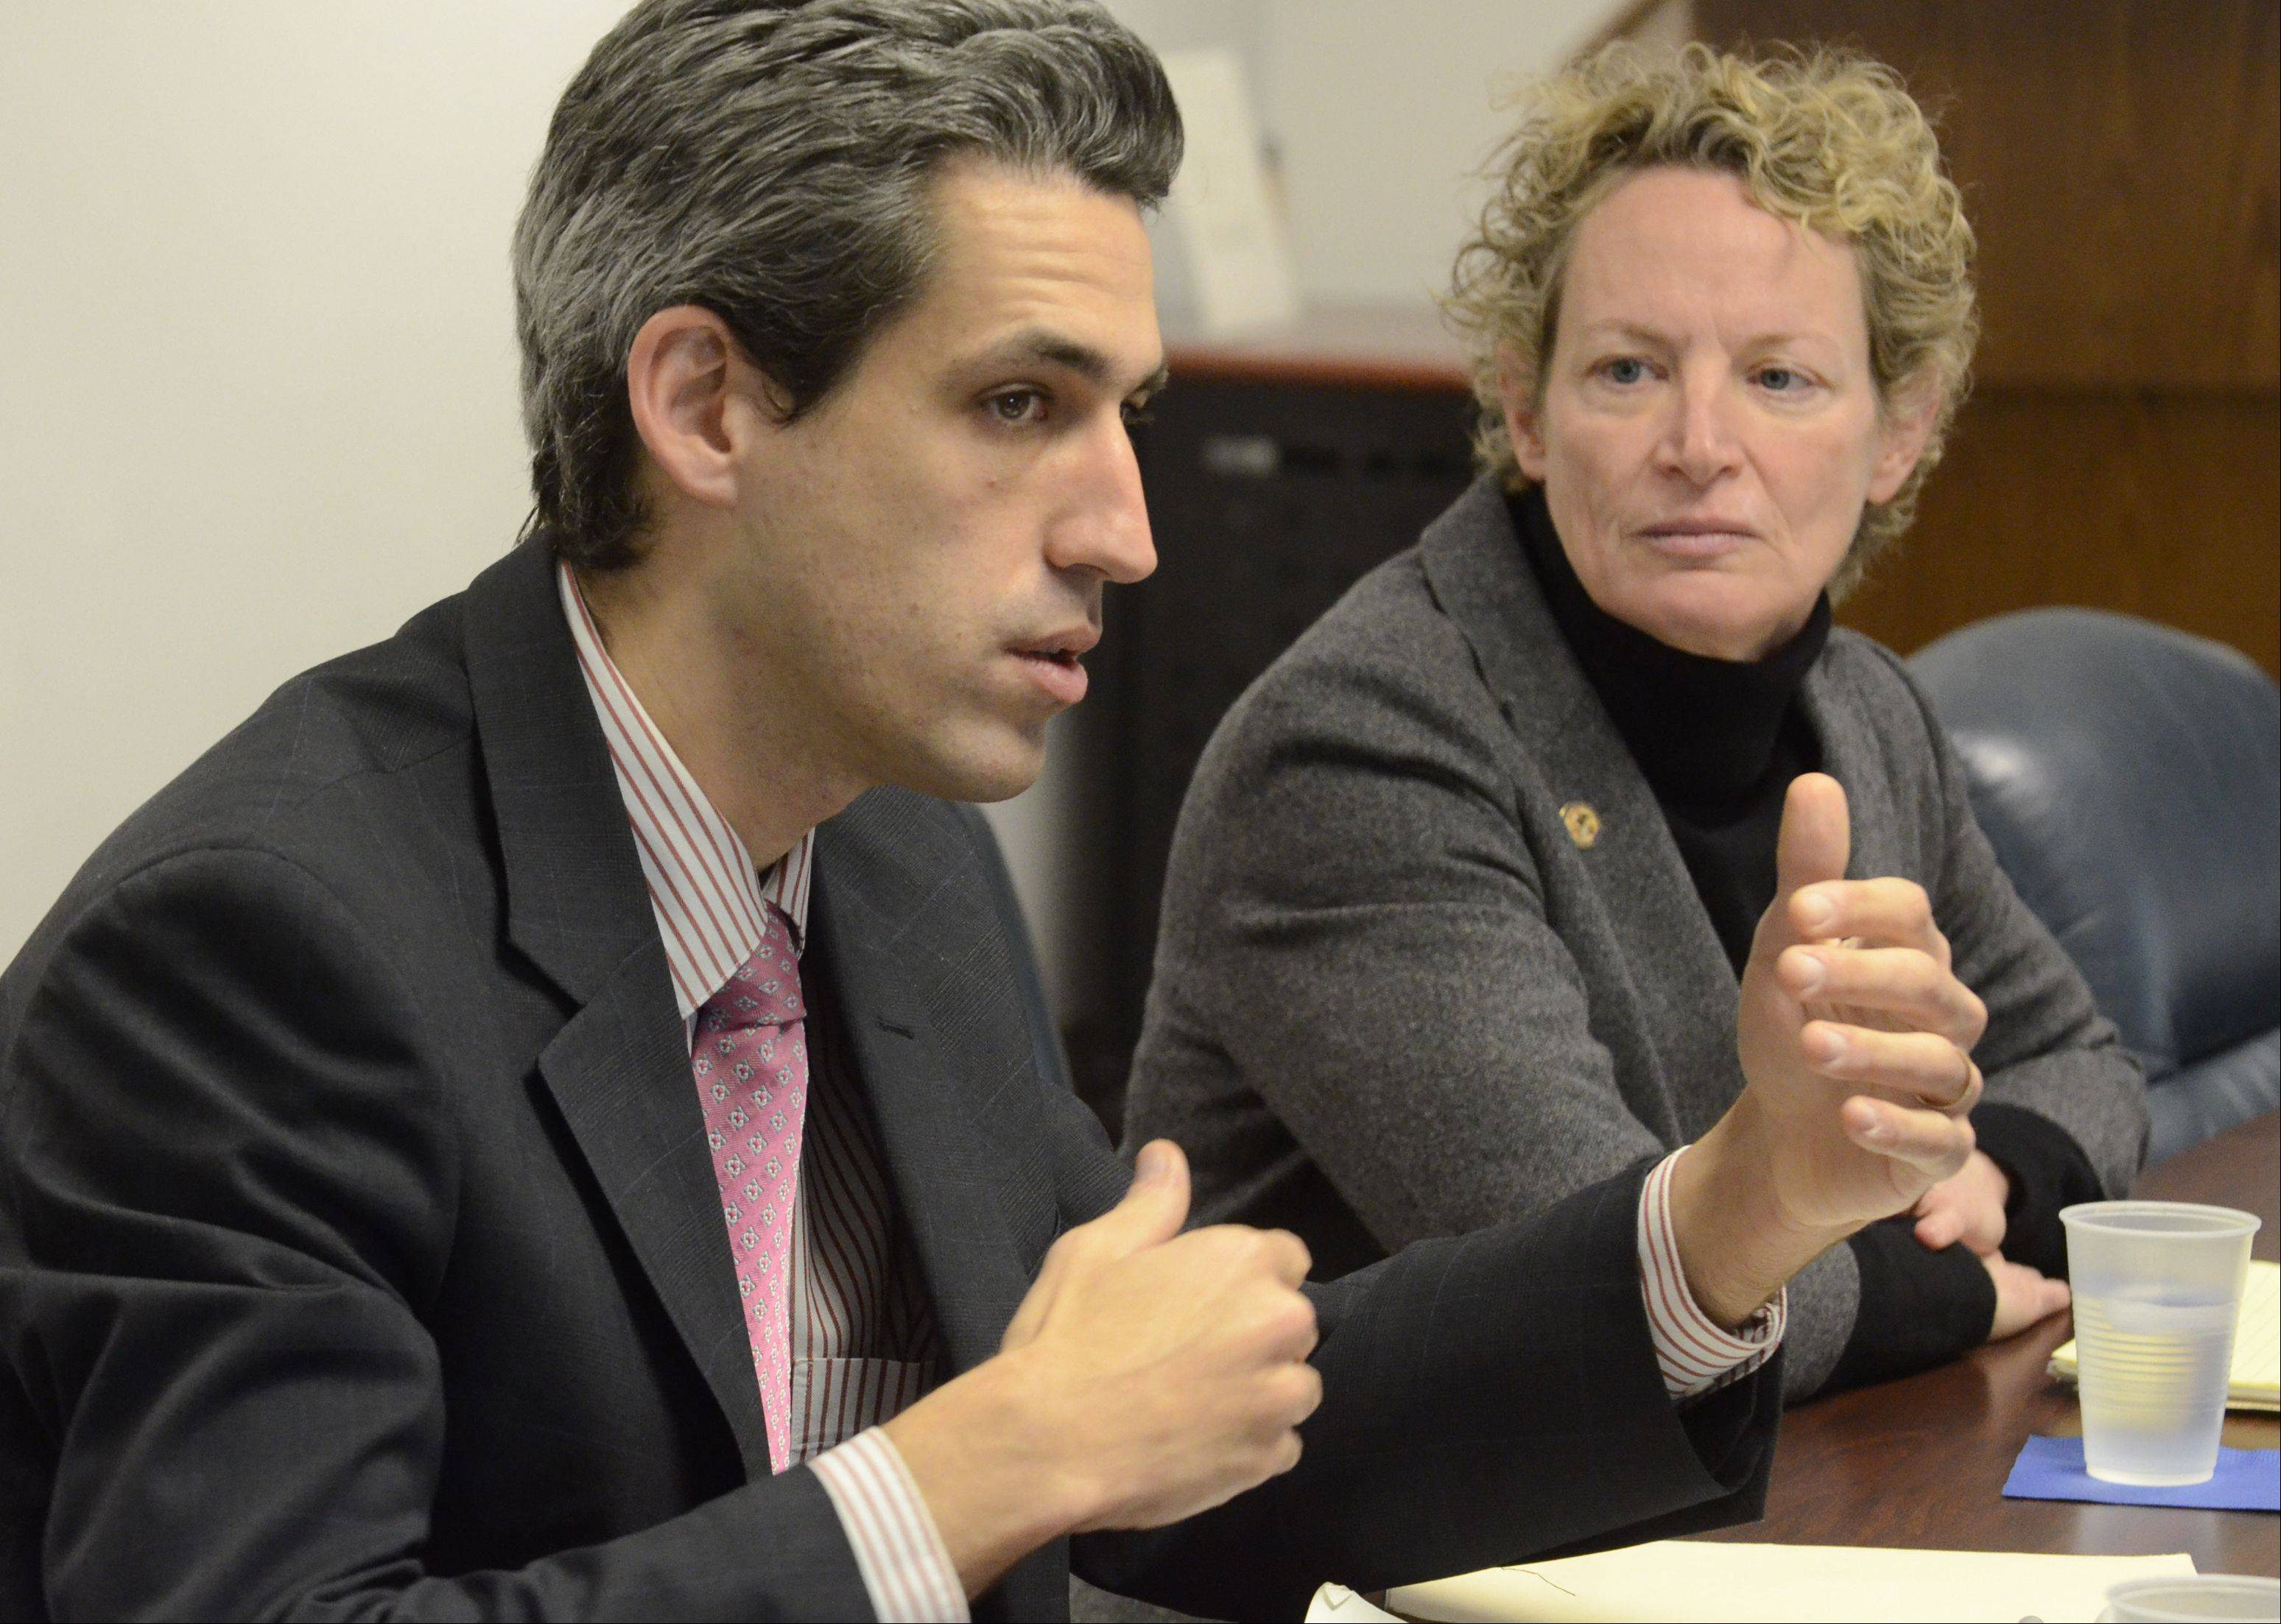 Illinois State Reps. Daniel Biss and Elaine Nekritz talk about pension reform with the Daily Herald Editorial Board earlier this month.